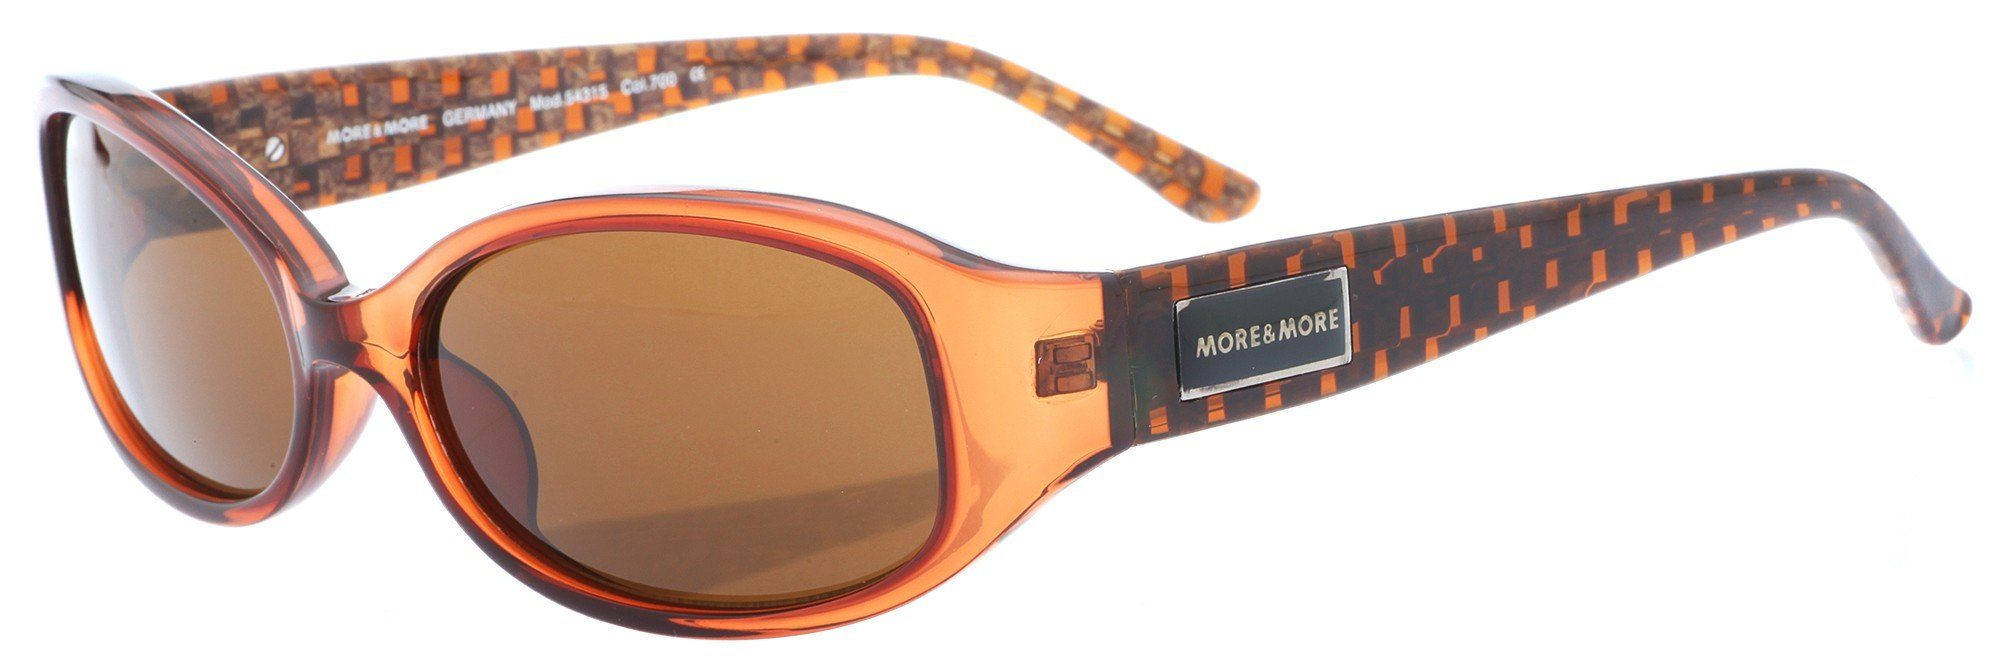 MORE&MORE Sonnenbrille